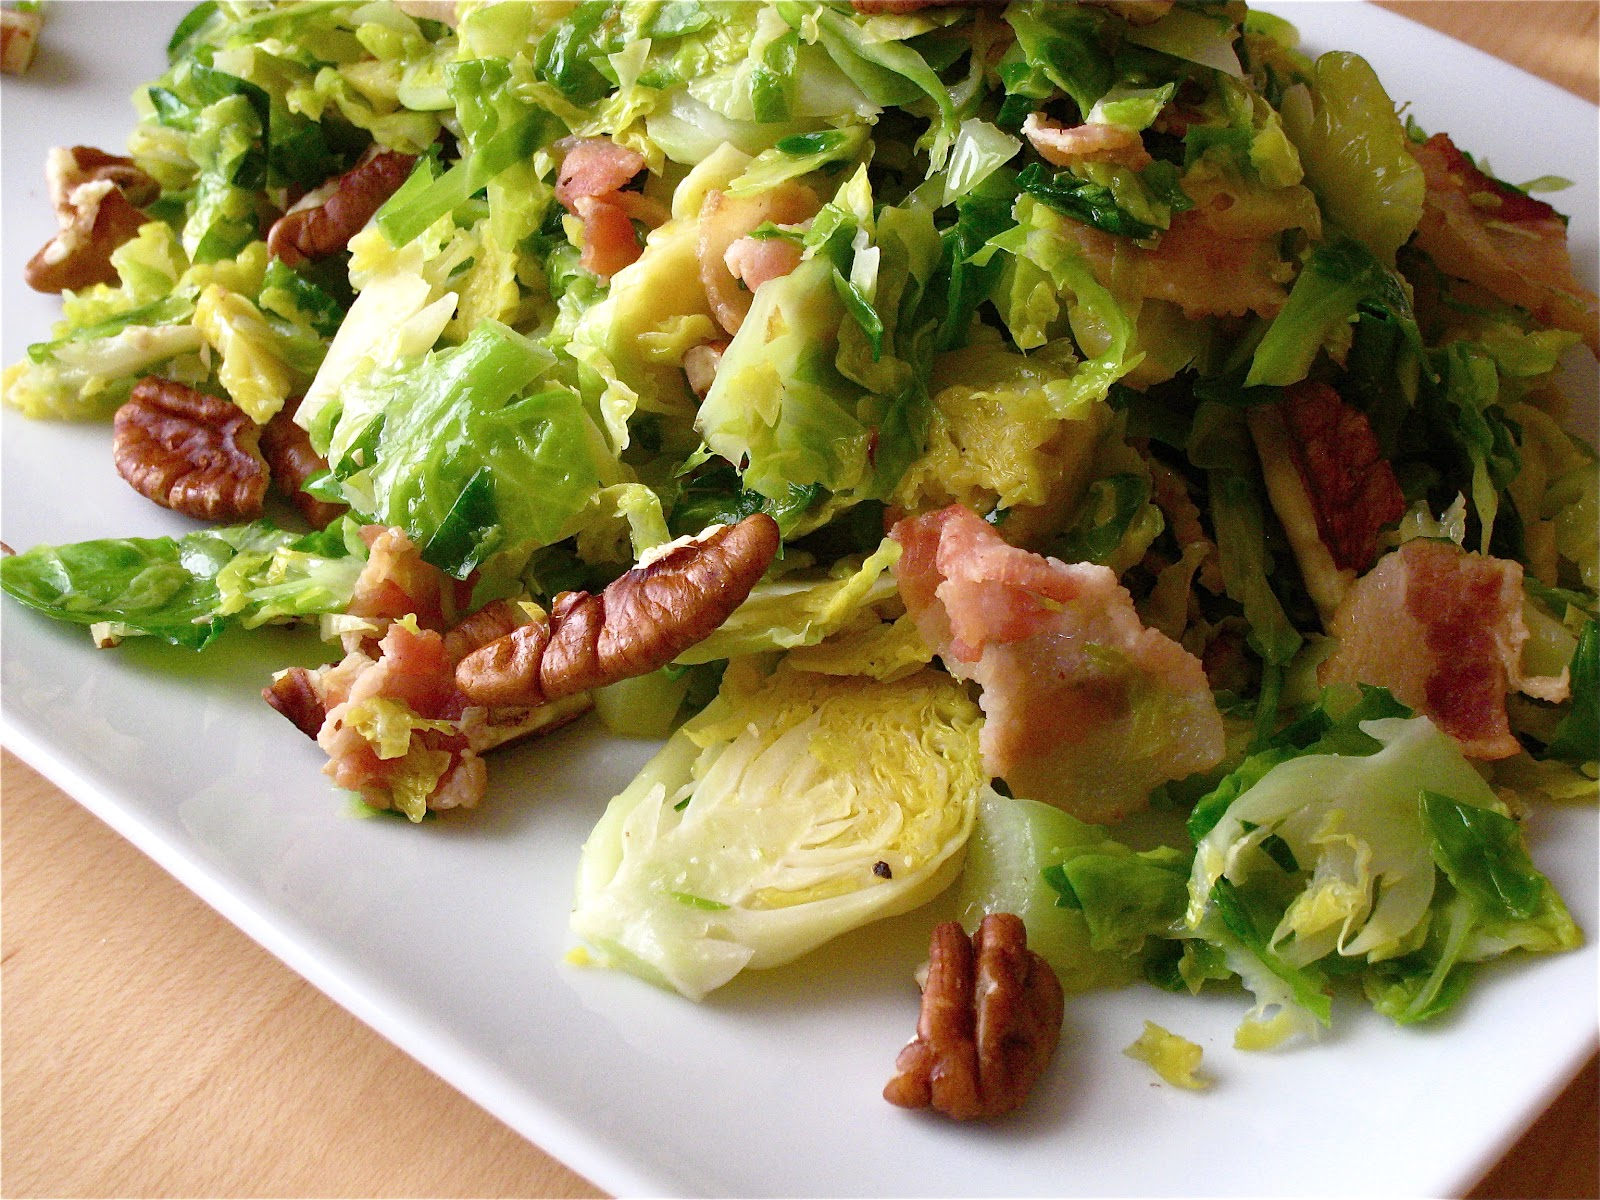 ... FIDDLER : Shredded Brussels Sprouts Sauté With Bacon and Pecans